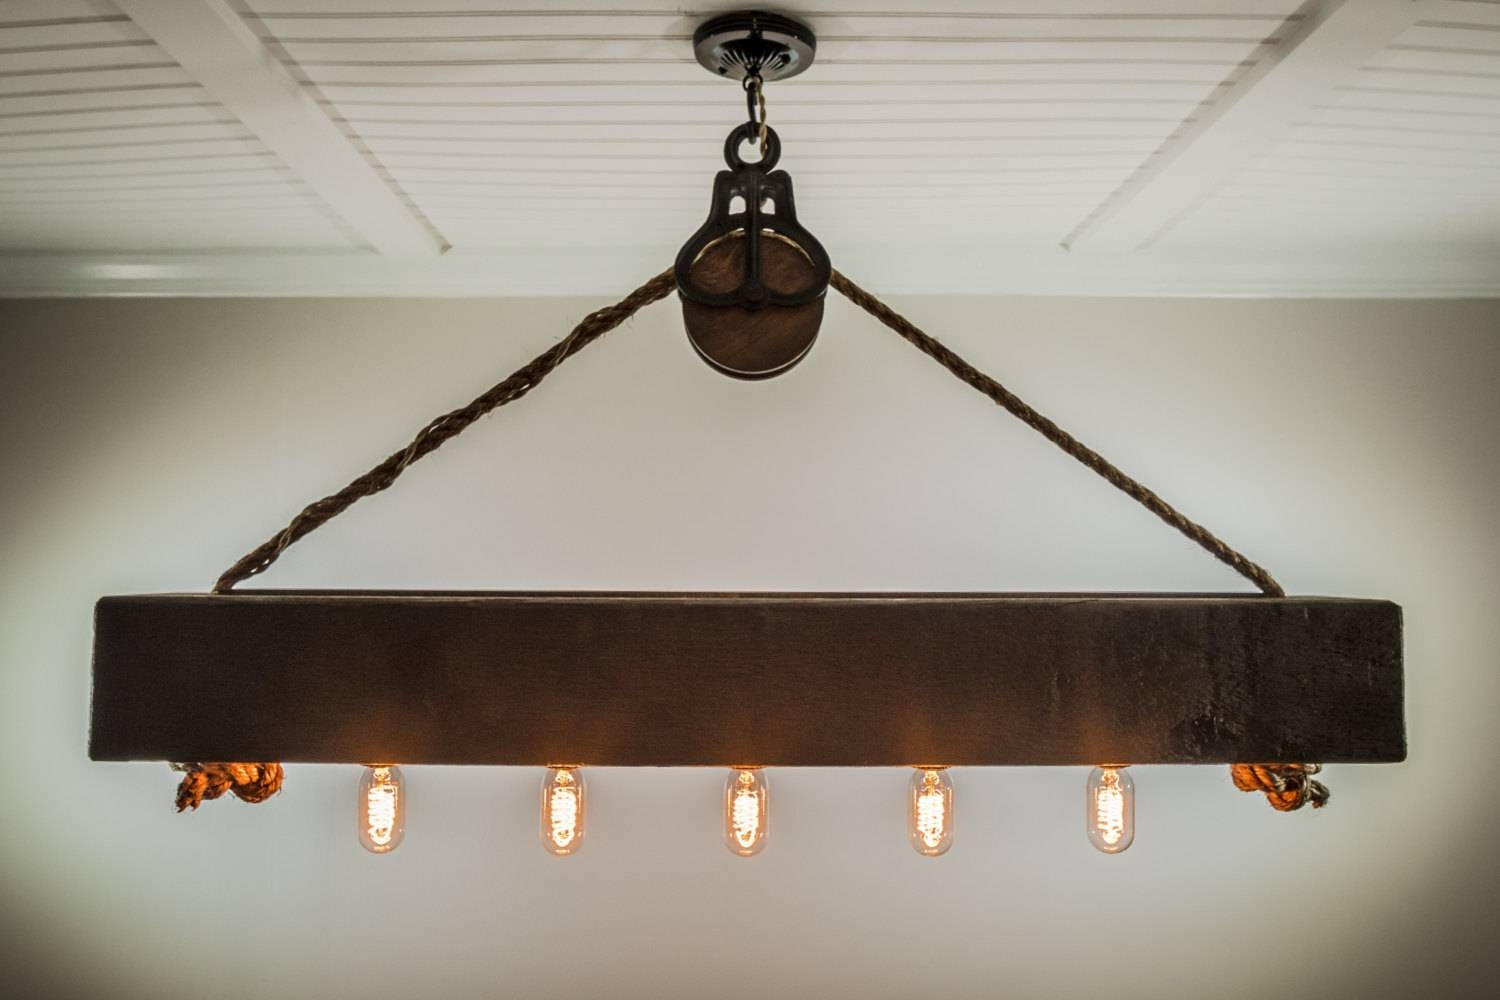 4 Ft Rustic Beam Edison Bulb Chandelier With Vintage Barn in Pulley Lights Fixtures (Image 2 of 15)